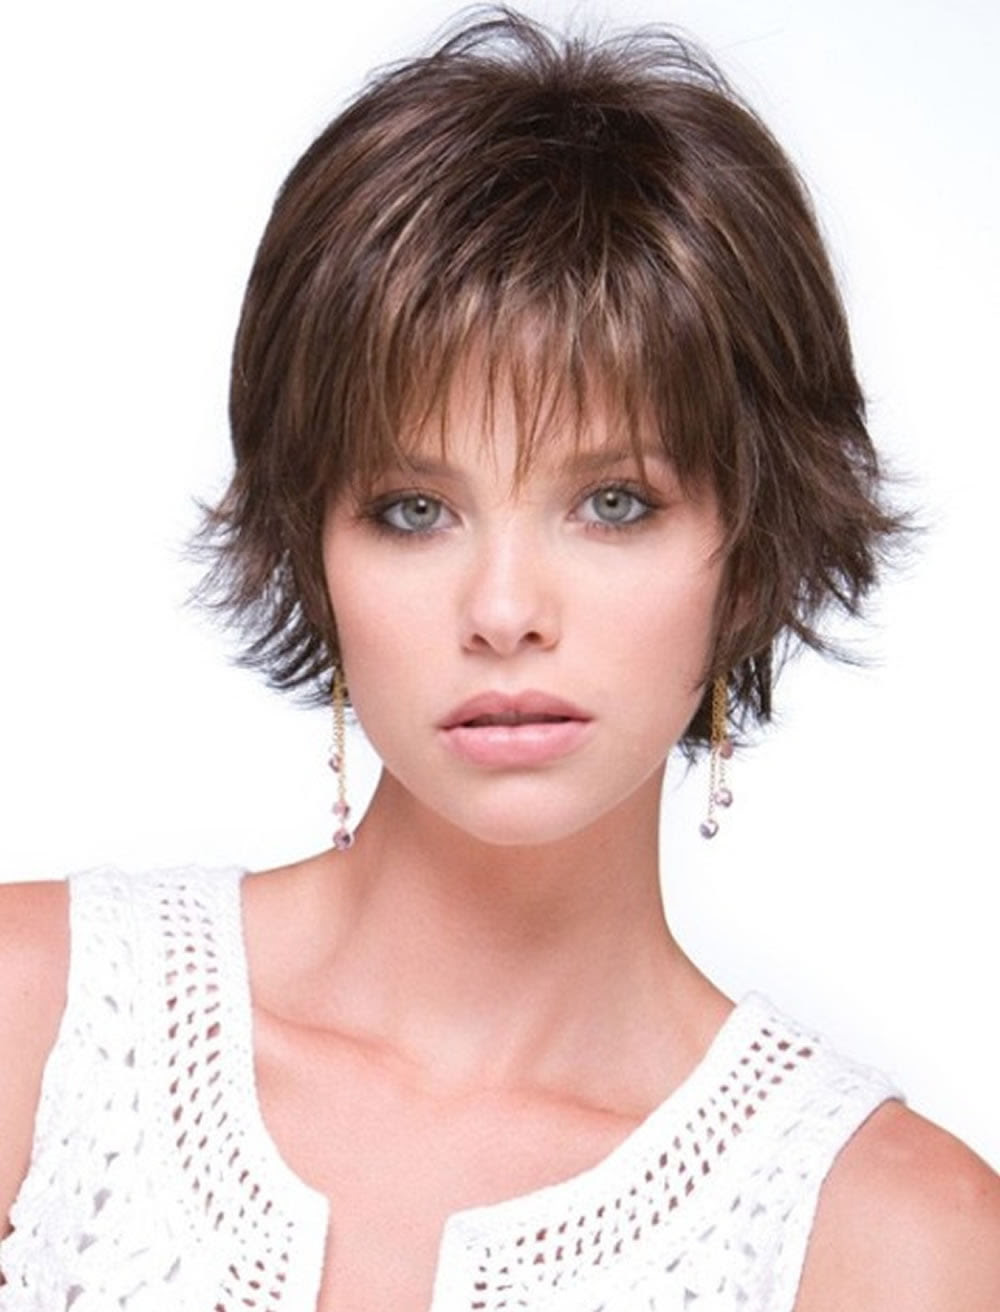 40+ Hairstyle For Oval Face With Thin Straight Hair, Great Inspiration!